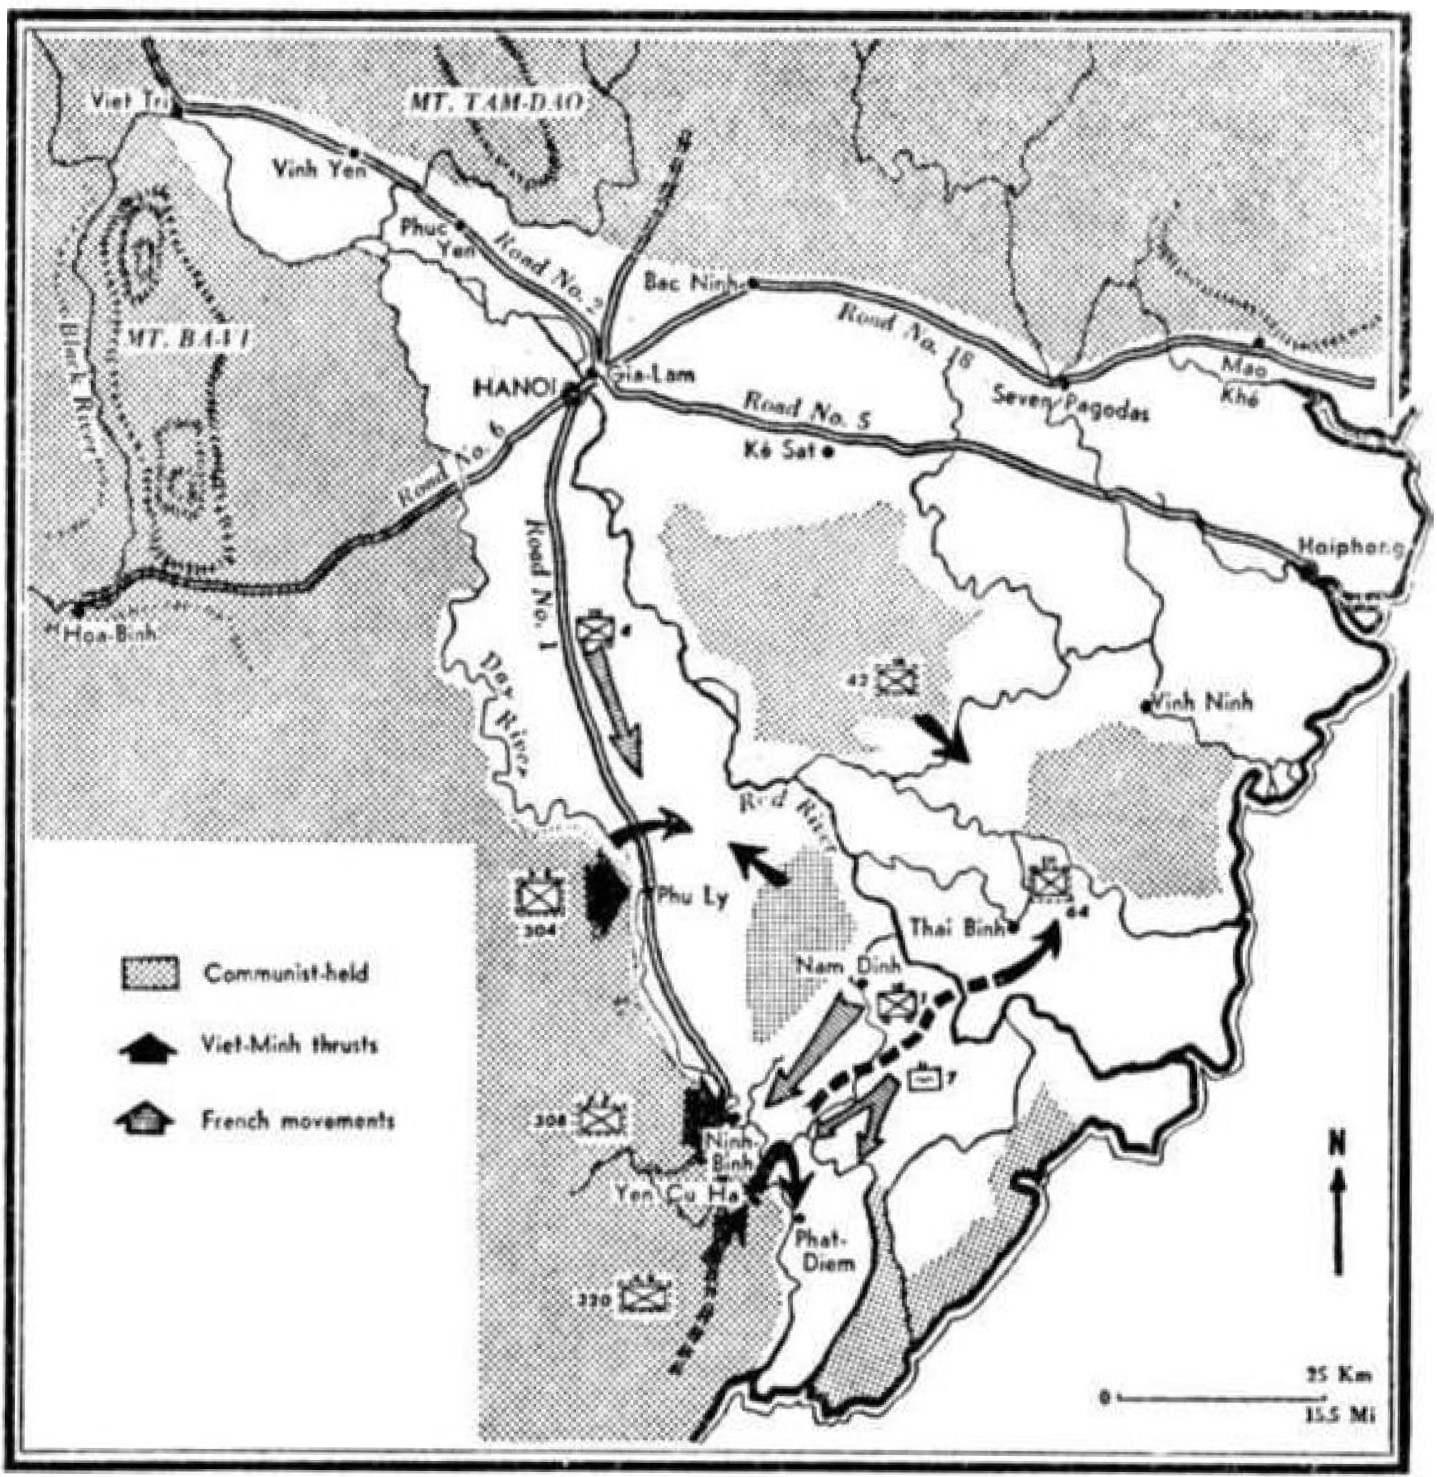 Operations Map